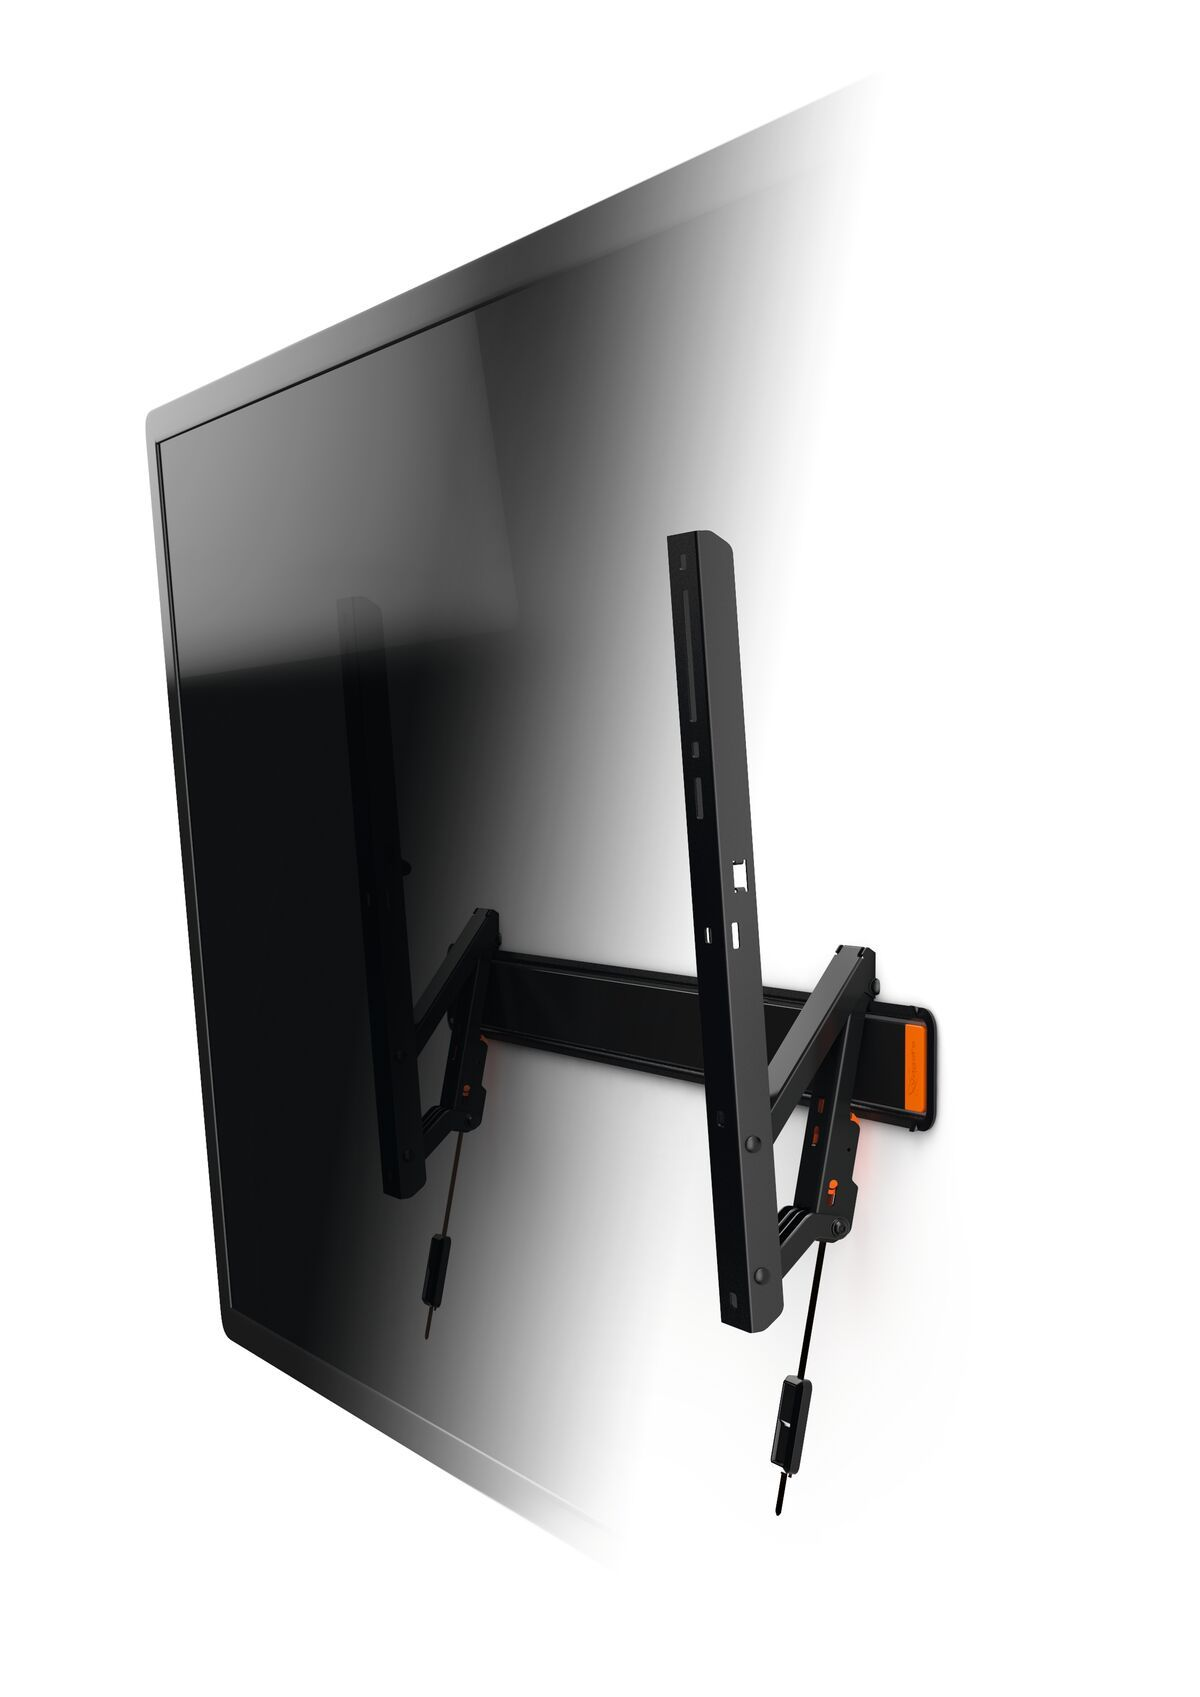 Vogel's W50710 Tilting TV Wall Mount - Suitable for 32 up to 55 inch TVs up to 30 kg - - Detail